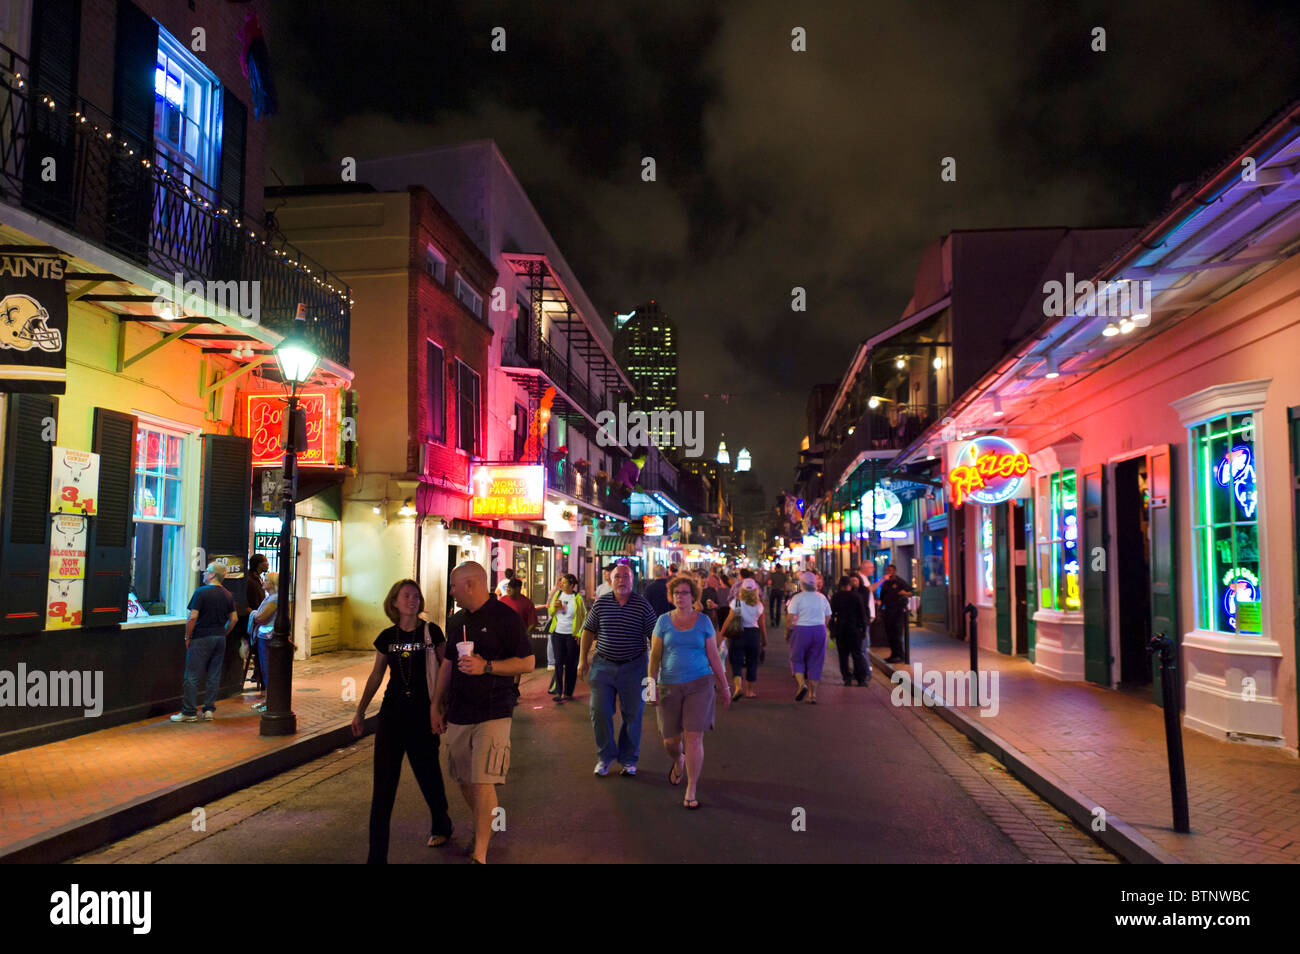 Bourbon Street at night, French Quarter, New Orleans, Lousiana, USA - Stock Image